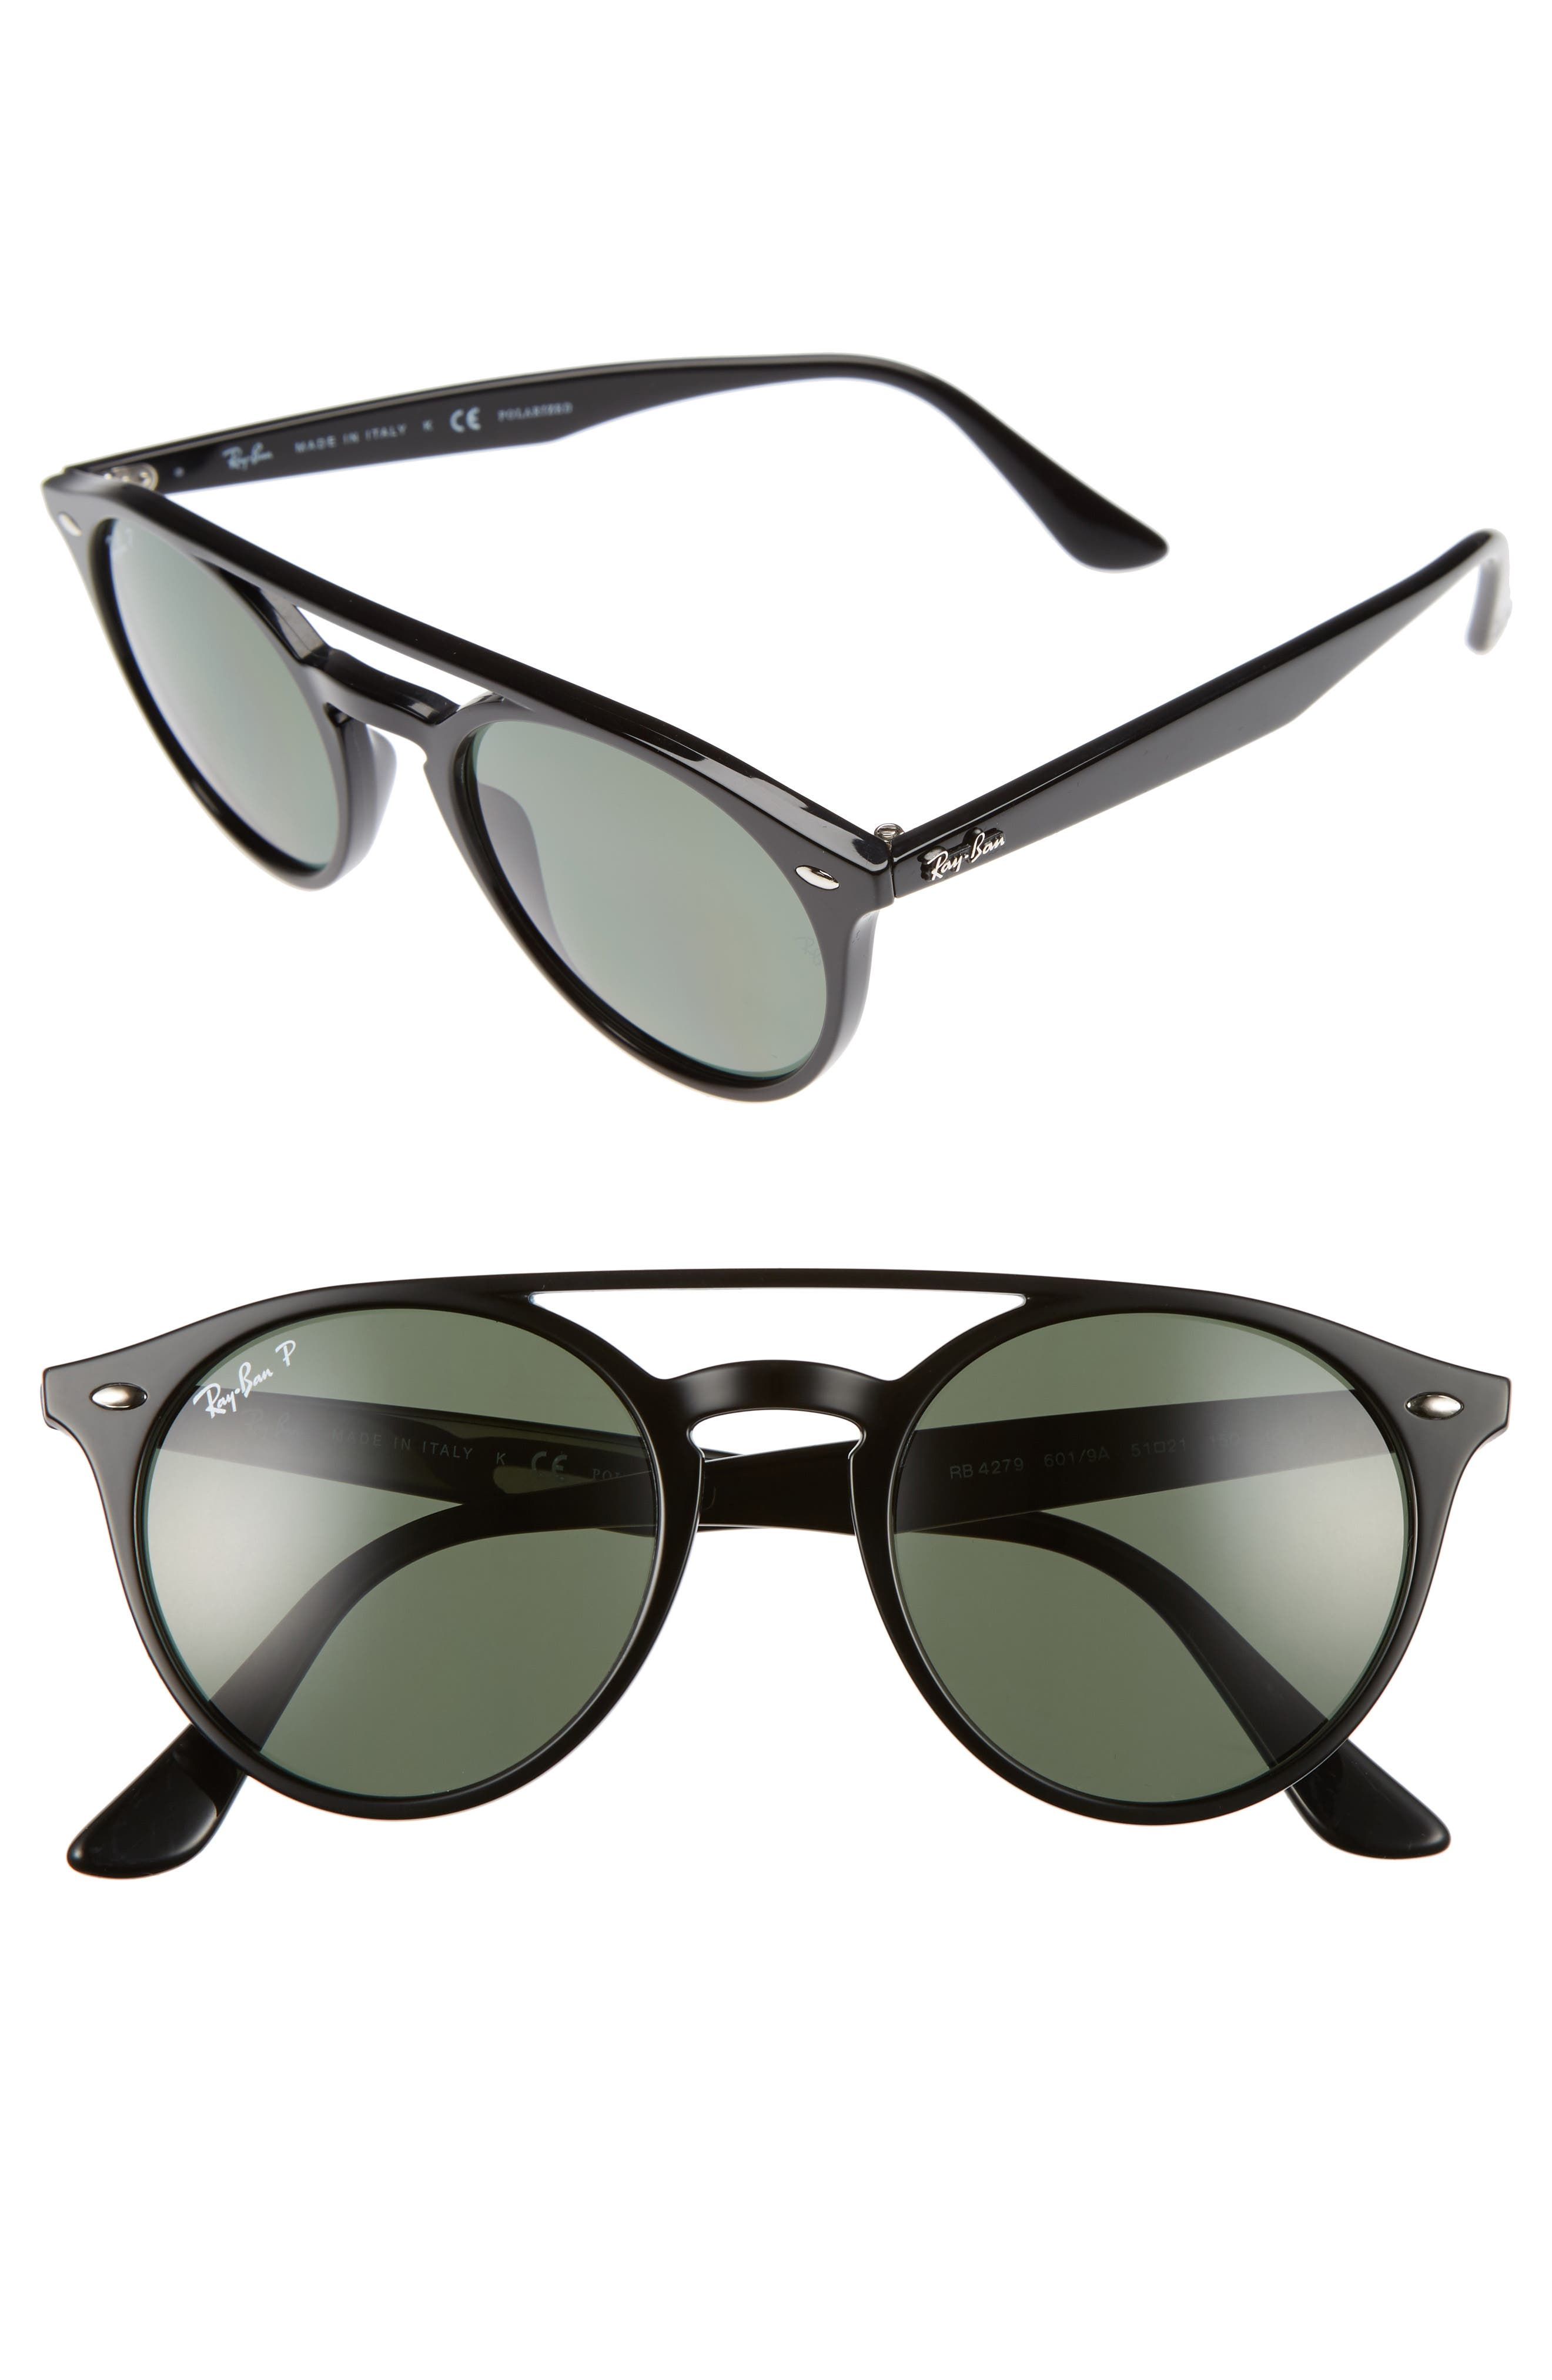 Main Image - Ray-Ban 51mm Polarized Round Sunglasses